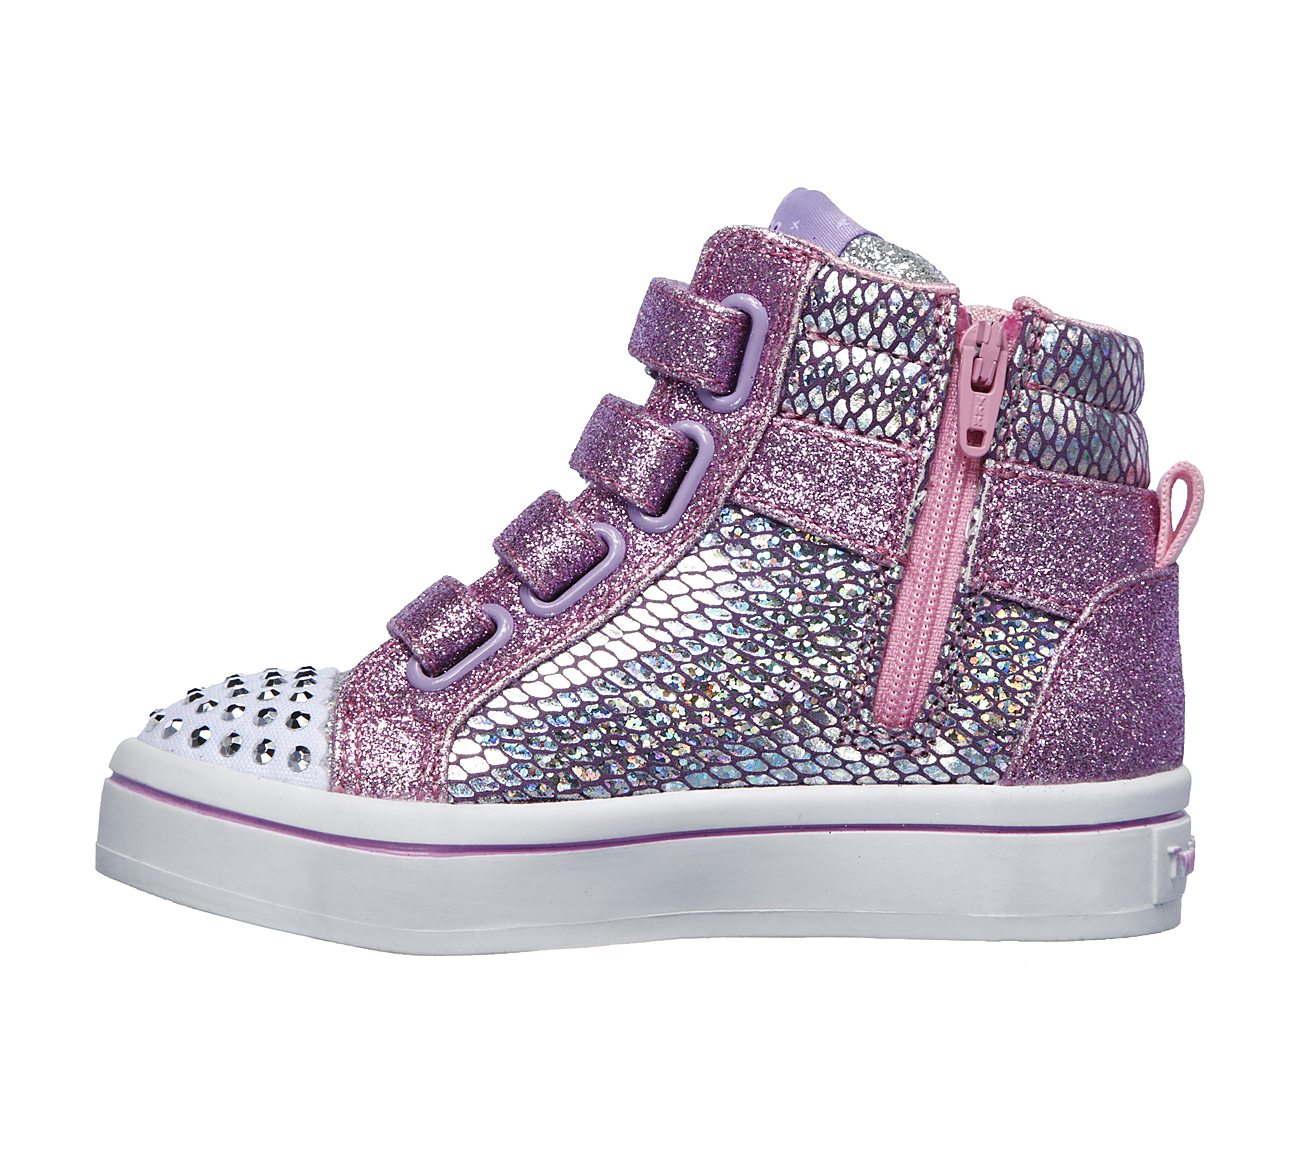 Twinkle Toes Twi Lites Miss Holla Glam Light Up High Top Sneaker